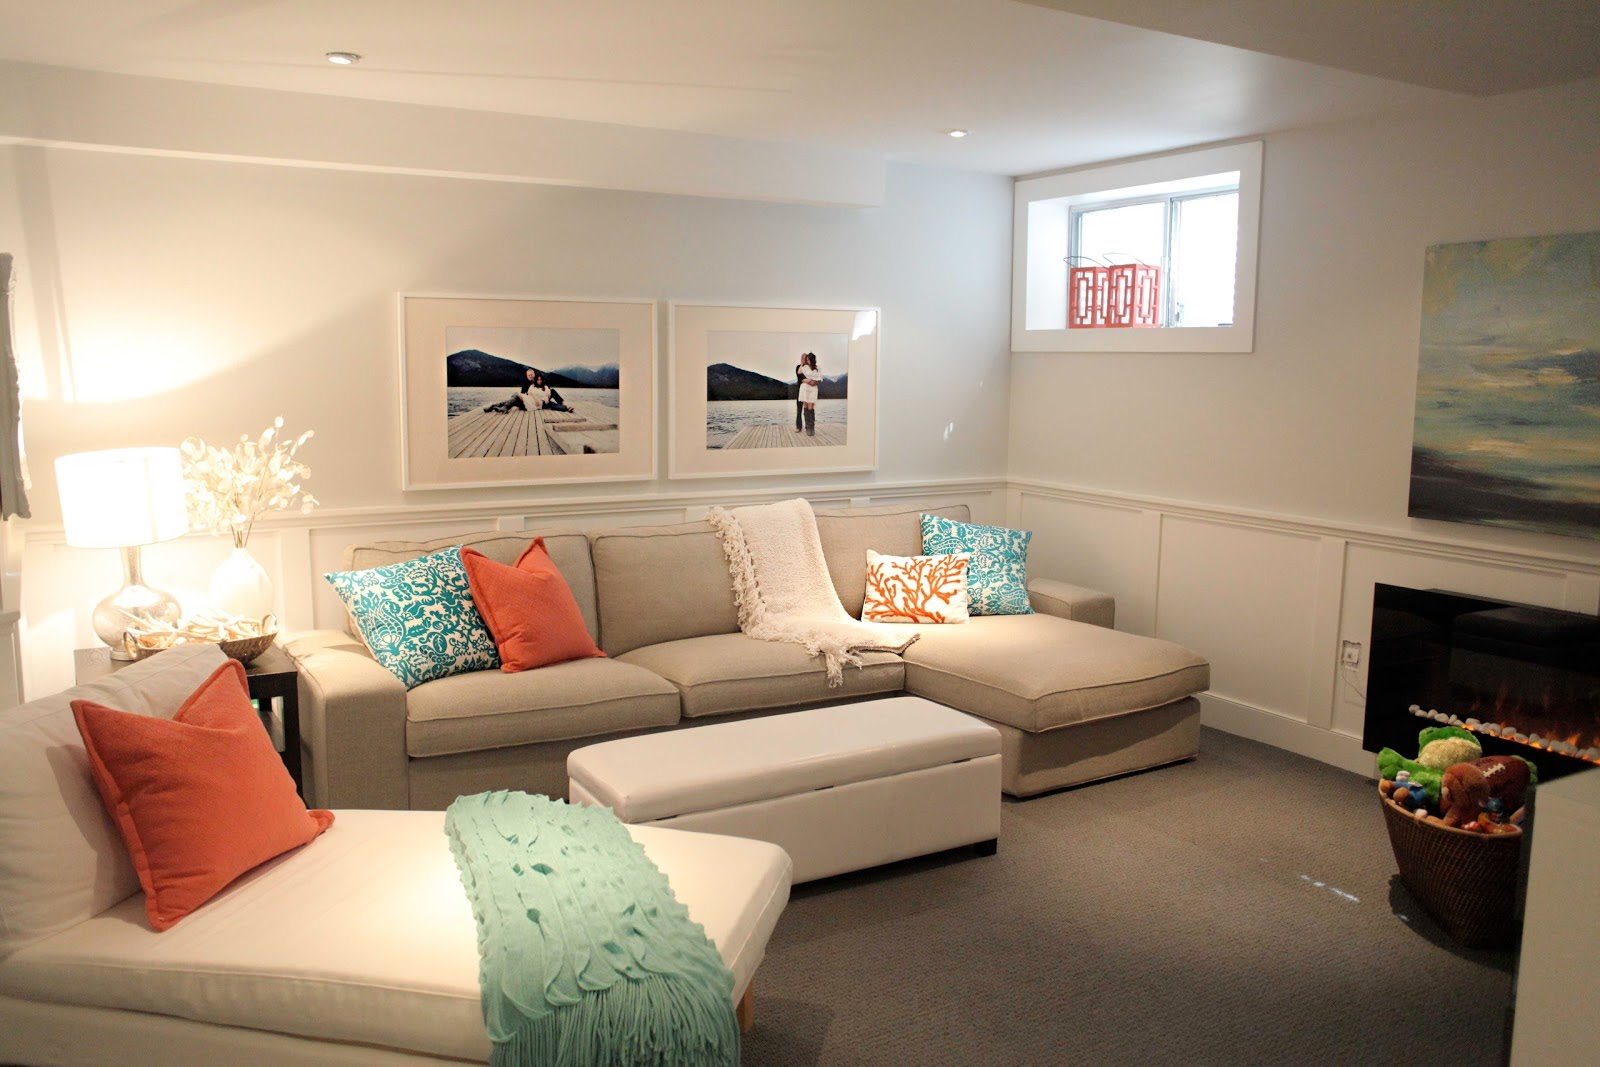 Sofa For Small Space Living Room Ideas - Best Home Design Video